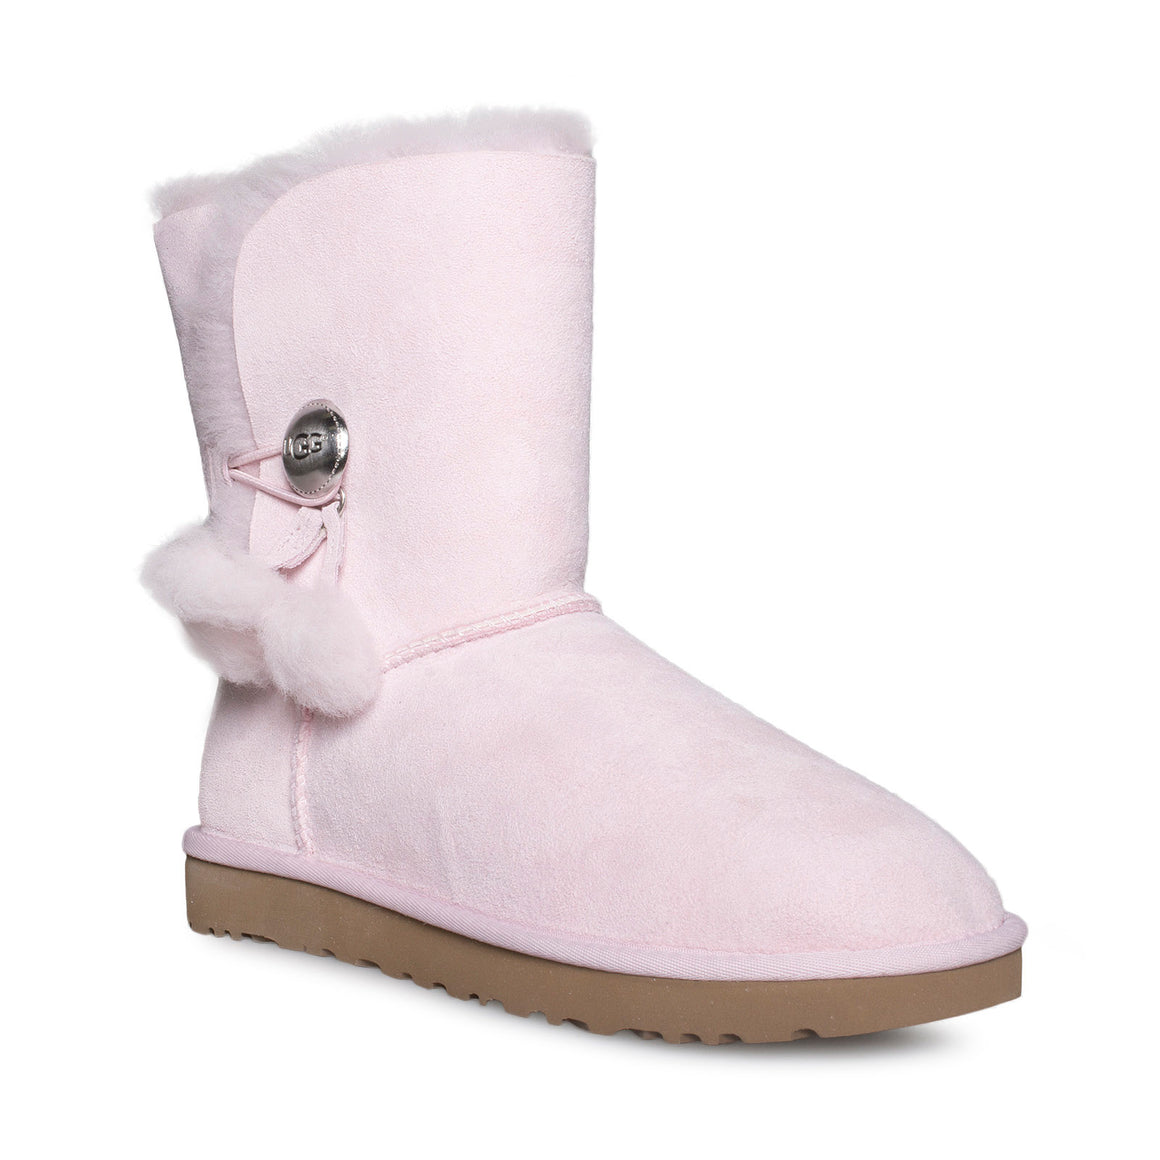 UGG Bailey Button Puff Seashell Pink Boots - Women's